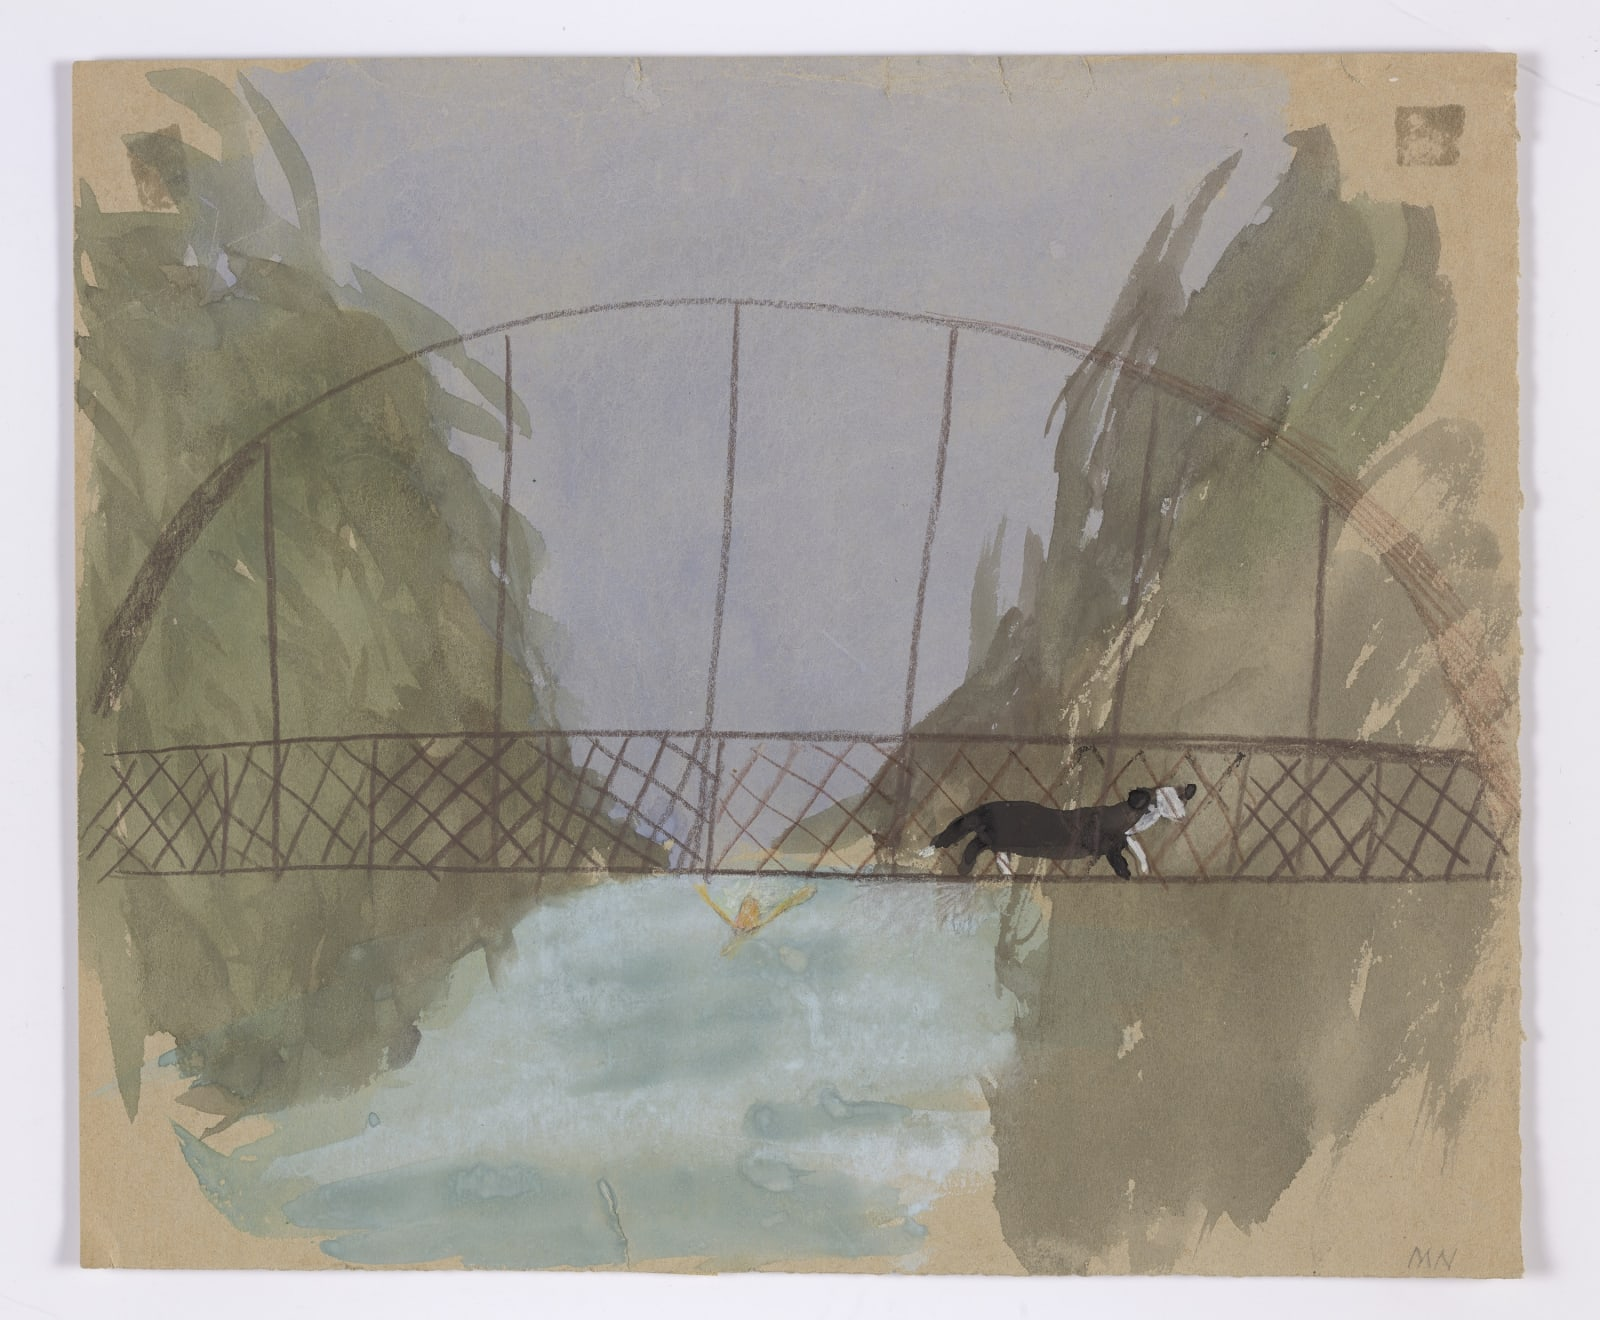 Mary Newcomb, Magpie dog going over bridge